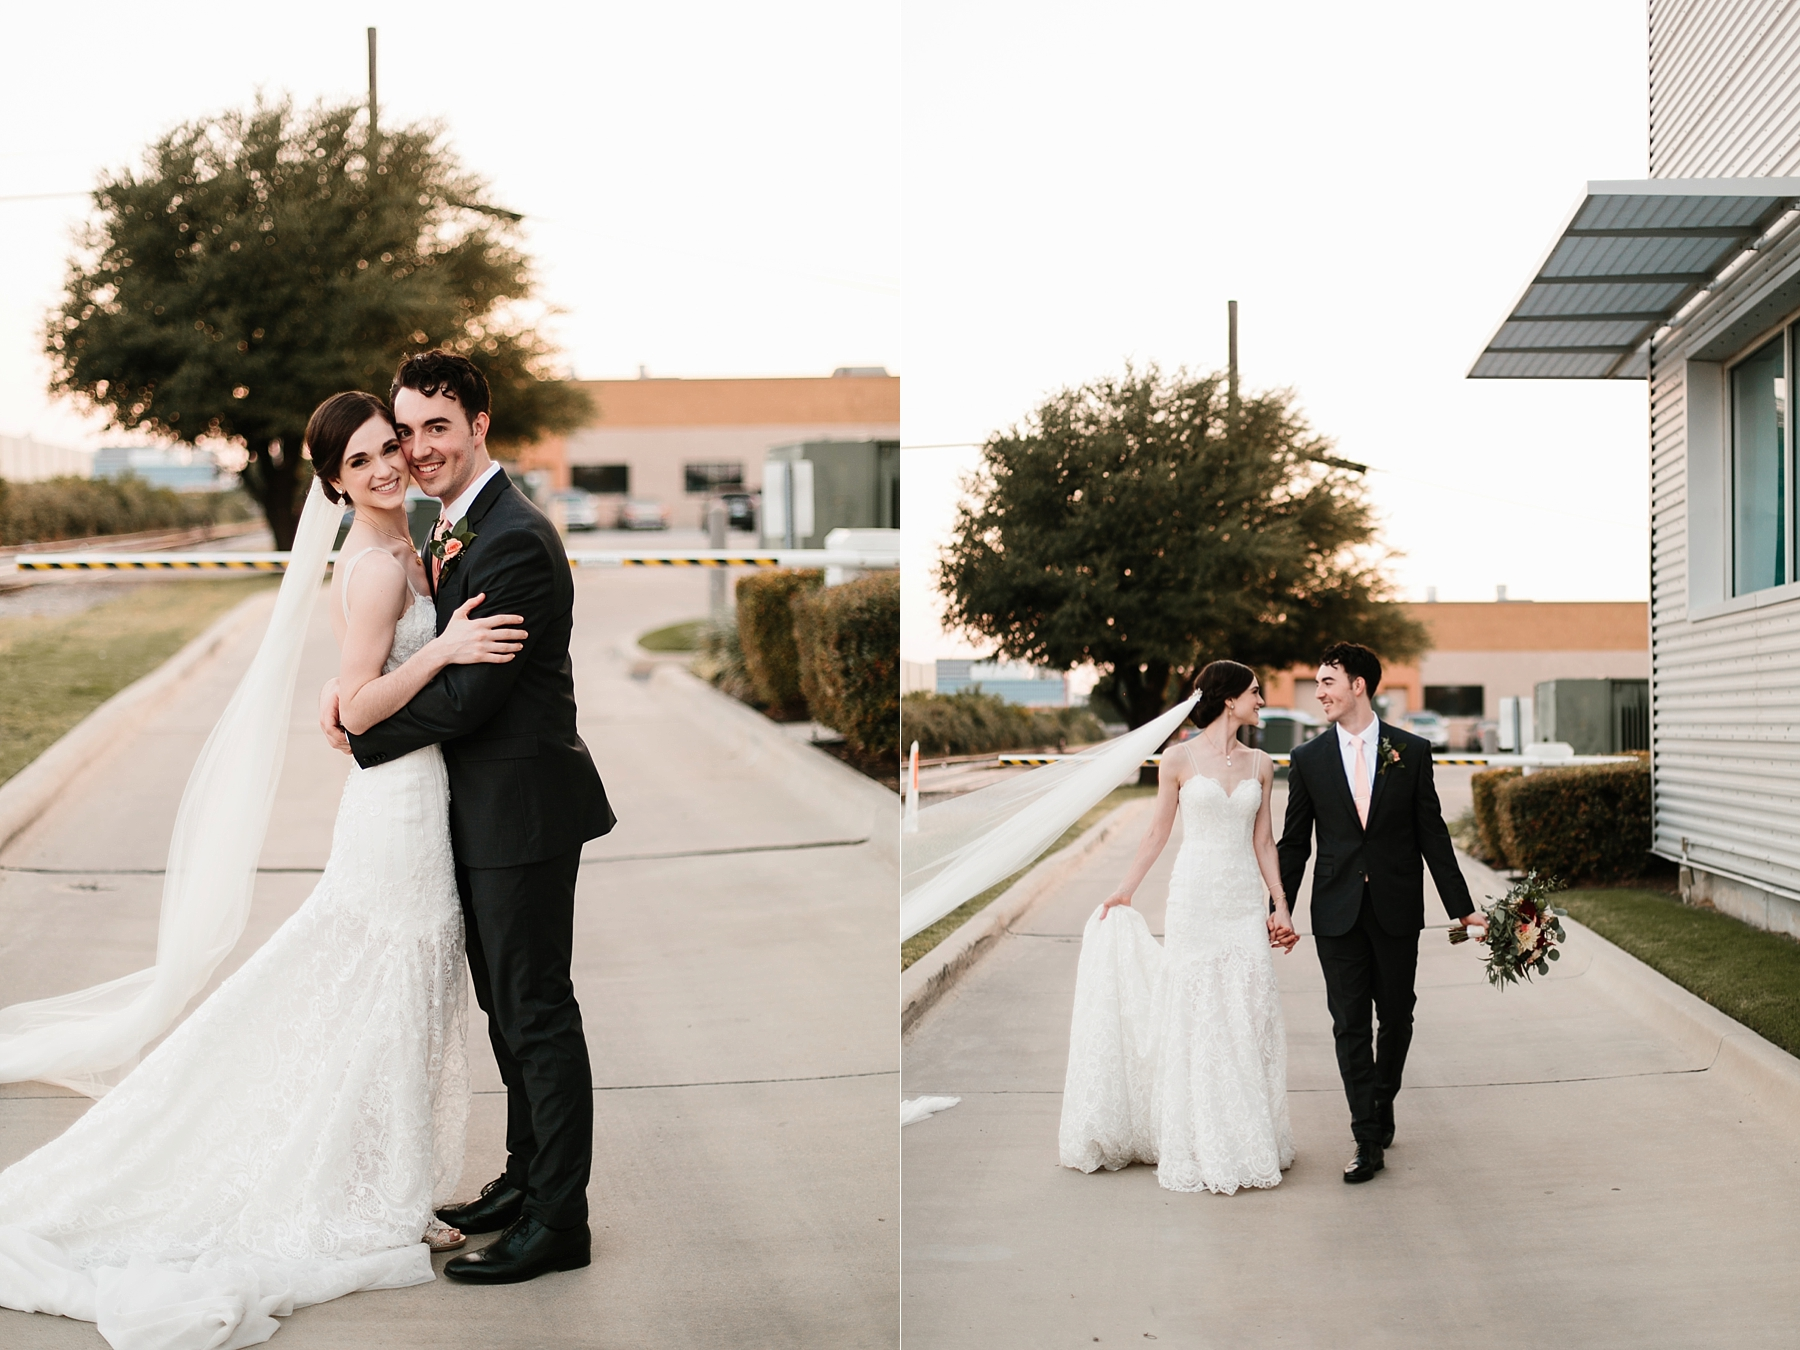 Emily + Caleb _ an elegant, intentional, industrial style wedding with navy + gold accents at 6500 in Dallas, TX by North Texas Wedding Photographer Rachel Meagan Photography _ 118